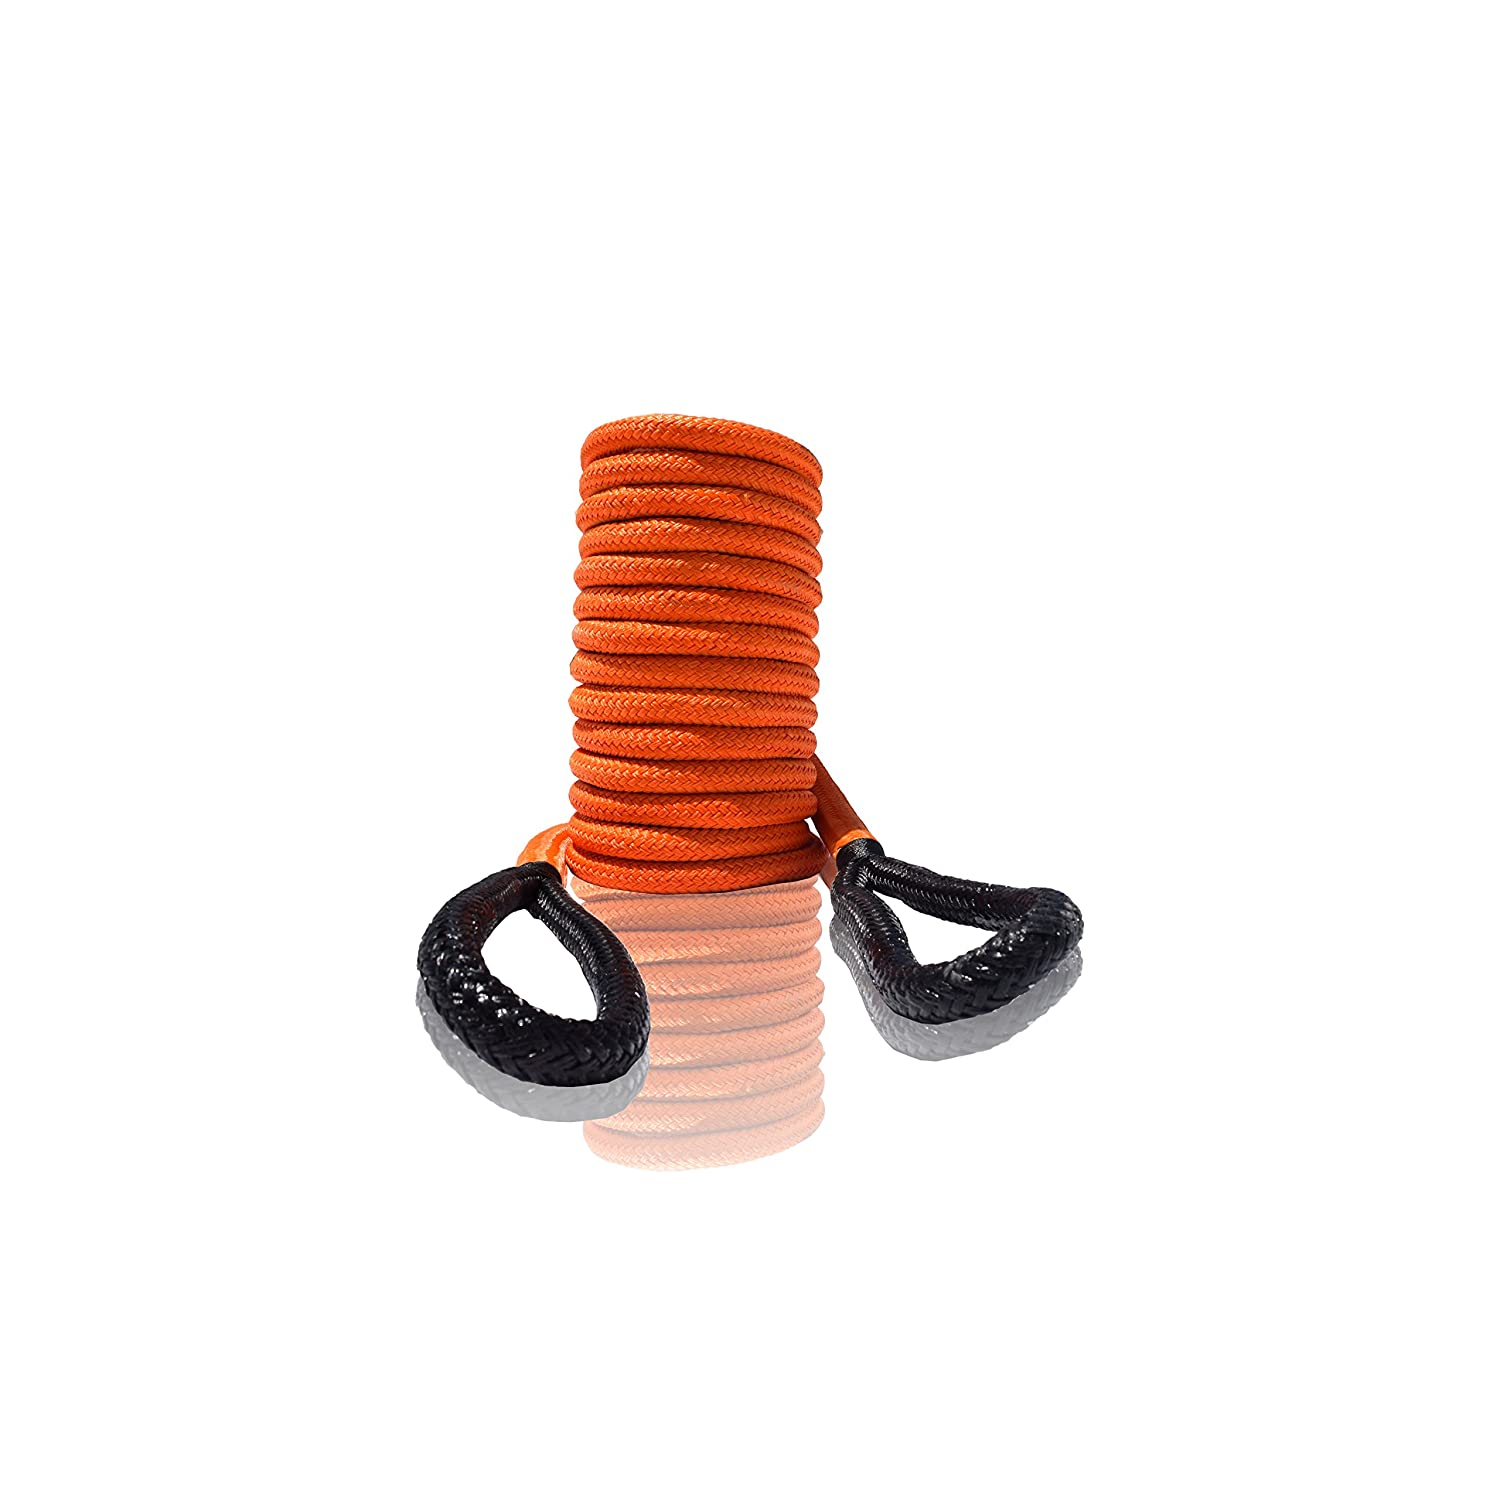 1//2x20, Orange QIQU Kinetic Recovery /& Tow Rope Heavy Duty Vehicle Tow Strap Rope for Truck ATV UTV SUV Snowmobile and 4x4 Off-Road Recovery 3 Size to Choose 1//2/'/'//3//4/'/'//1/'/' 3 Color